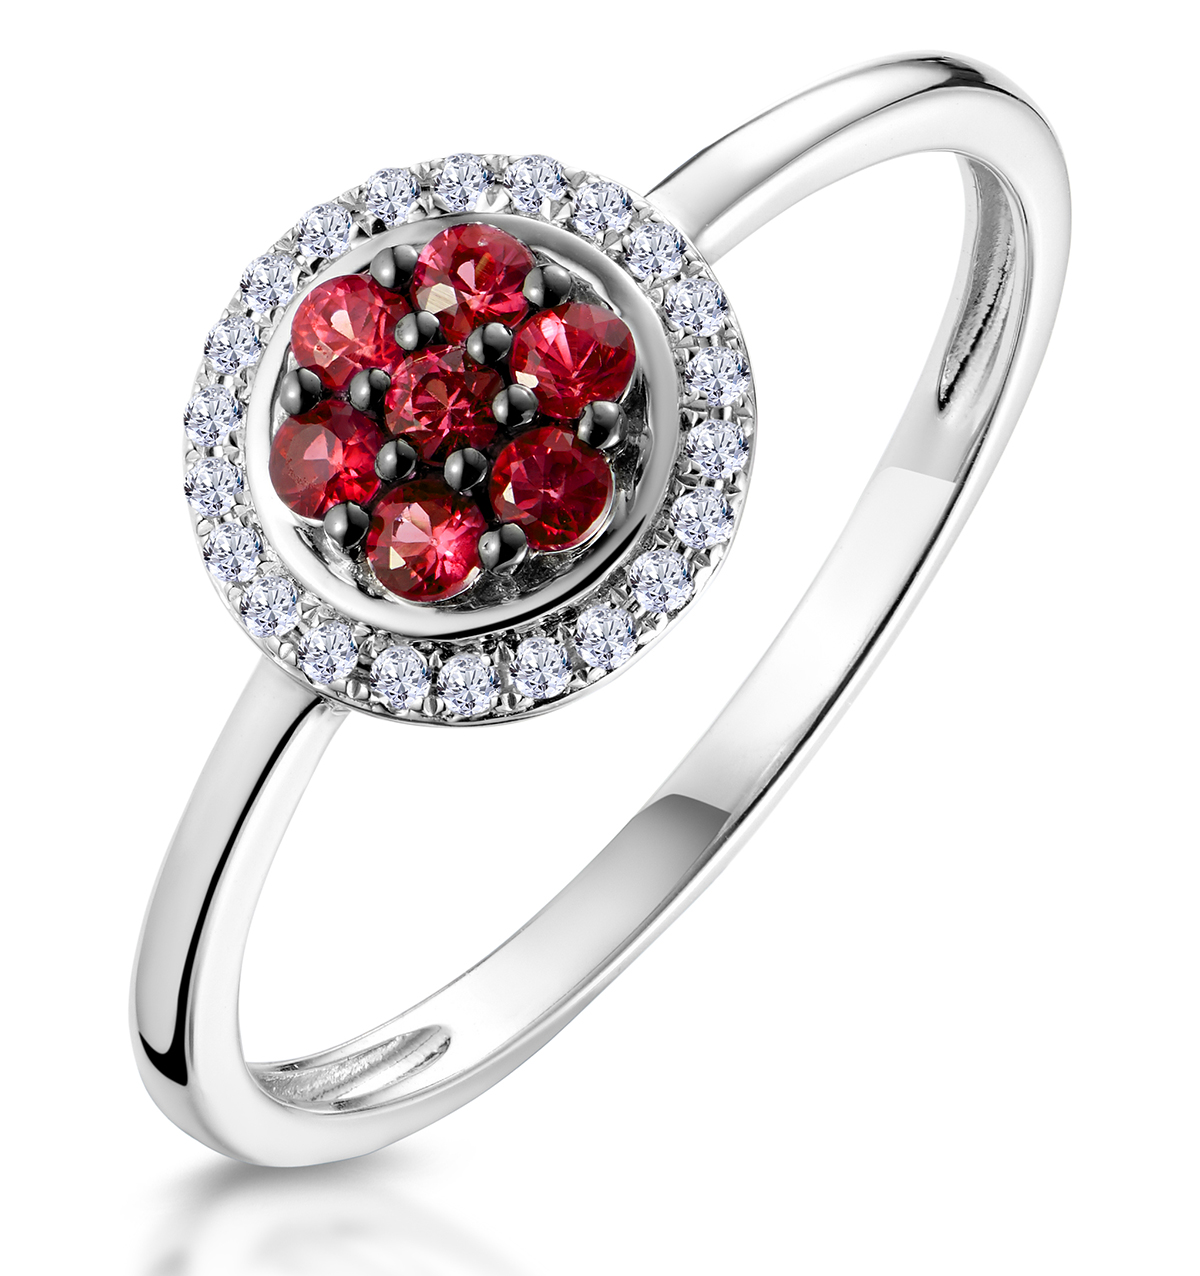 0.22CT RUBY AND DIAMOND RING IN 9K WHITE GOLD - STELLATO COLLECTION